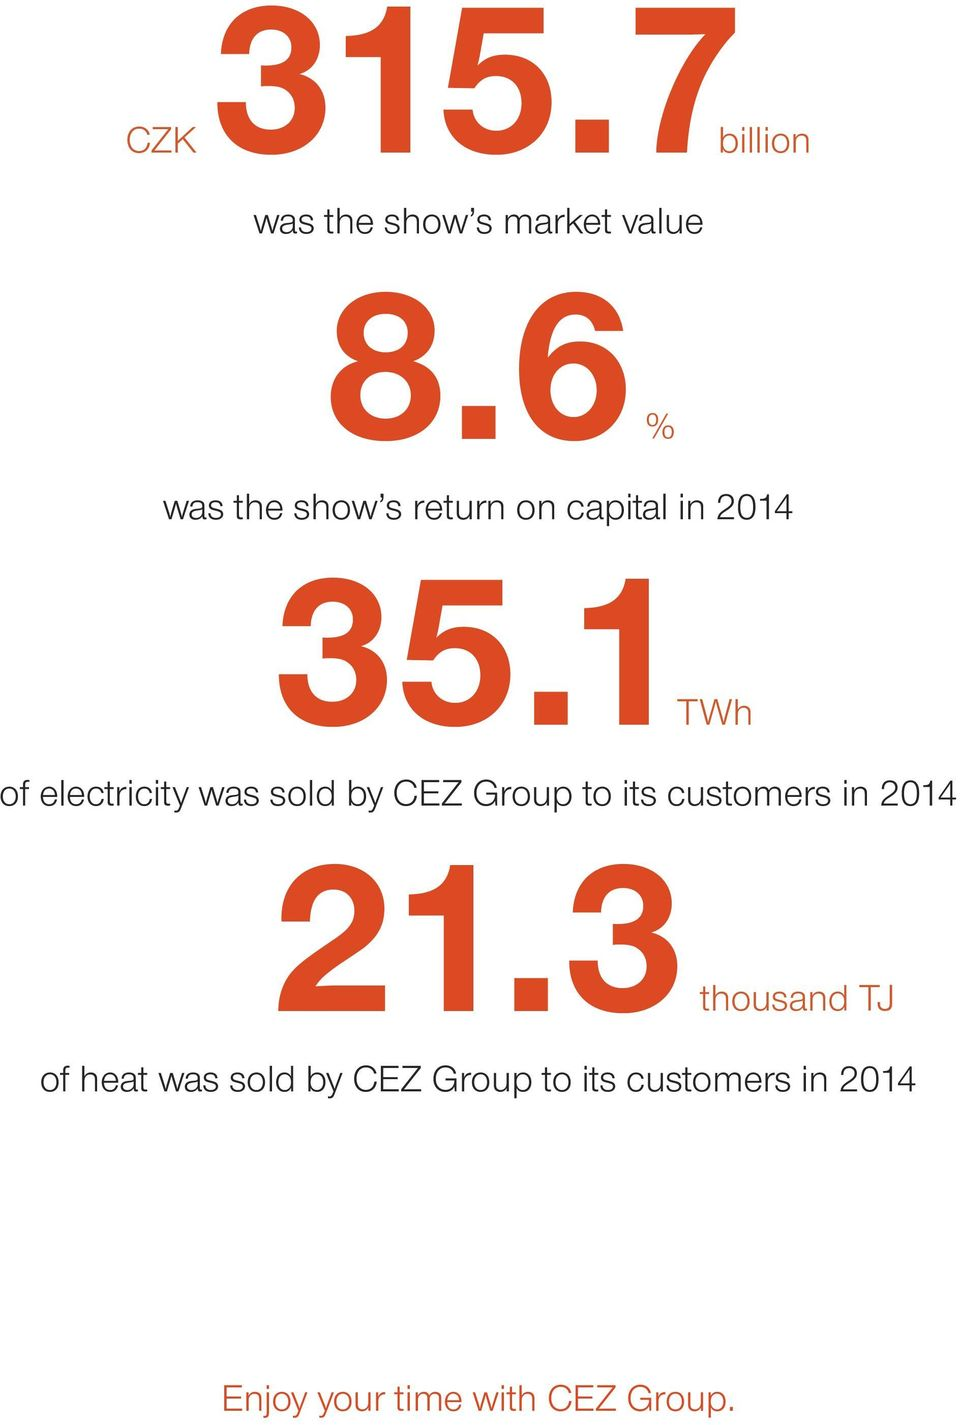 1TWh of electricity was sold by CEZ Group to its customers in 2014